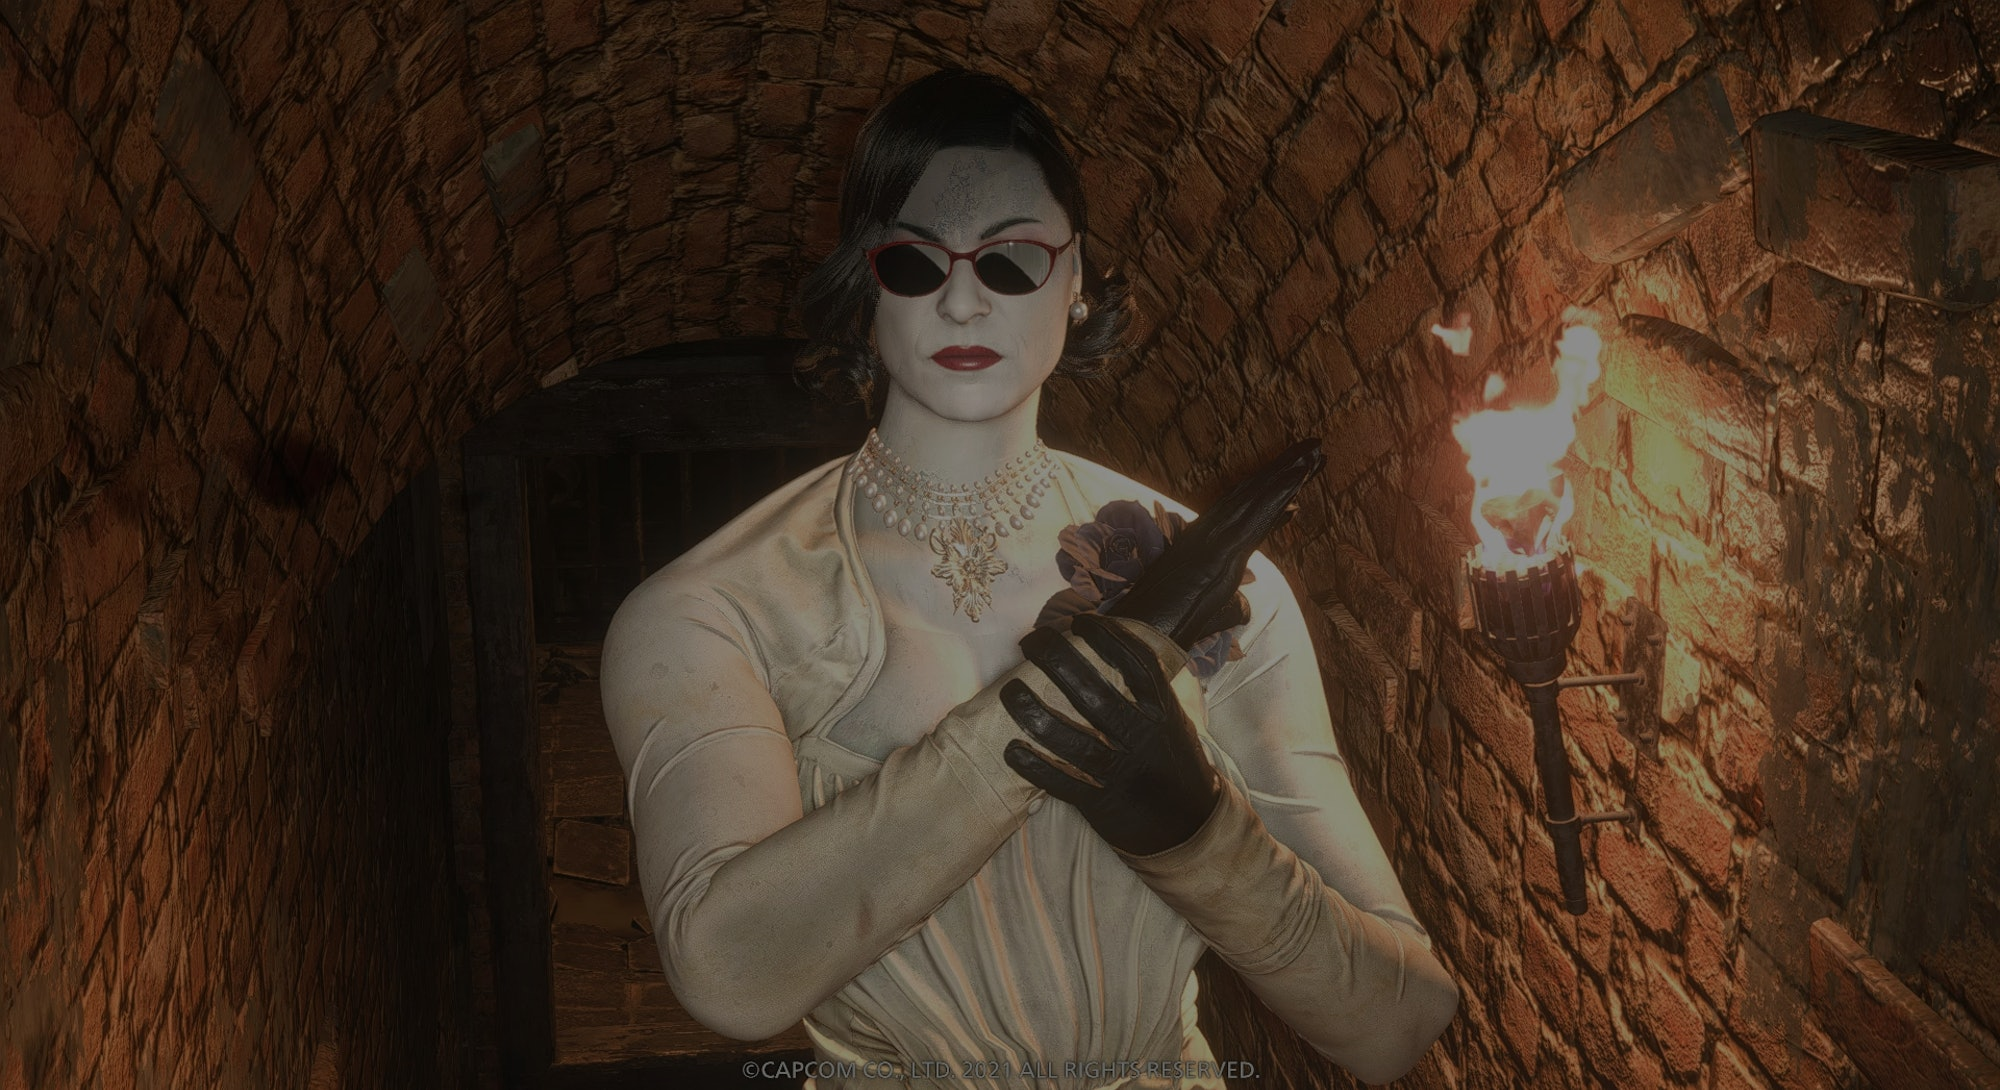 Lady Dimitrescu in Resident Evil Village. Games. Video games. Gaming. Modding. Modders.